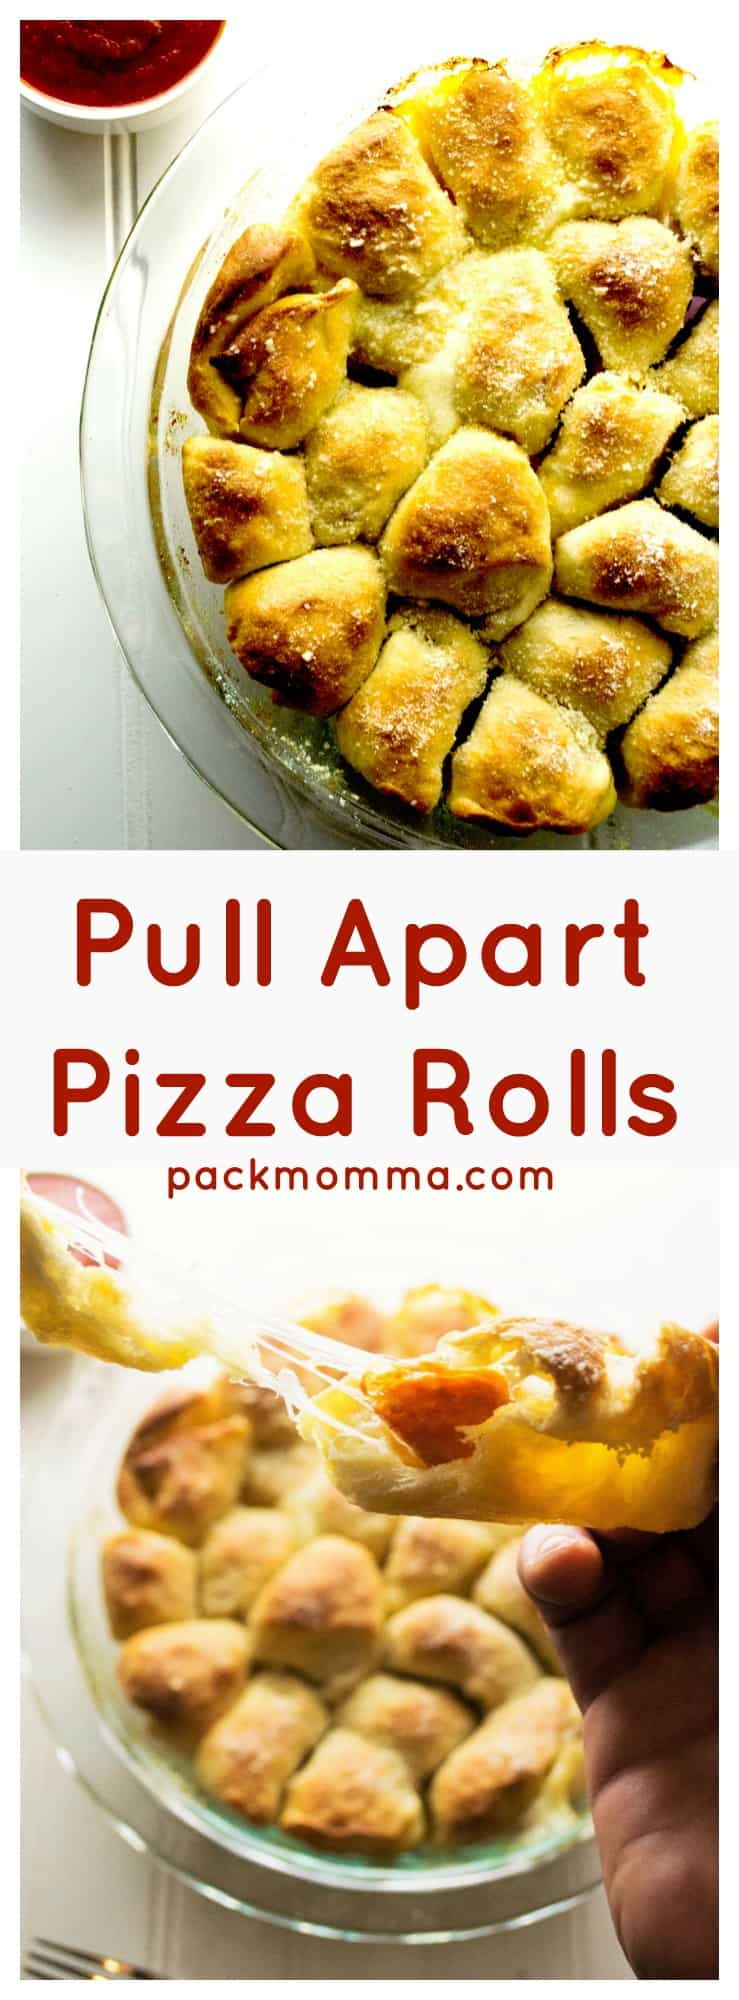 Pull Apart Pizza Rolls - These easy Pull Apart Pizza Rolls are the perfect Go-To to fulfill your pizza cravings. Fast, hot and delicious, they are ideal for snacking and sharing. | Pack Momma | https://www.packmomma.com